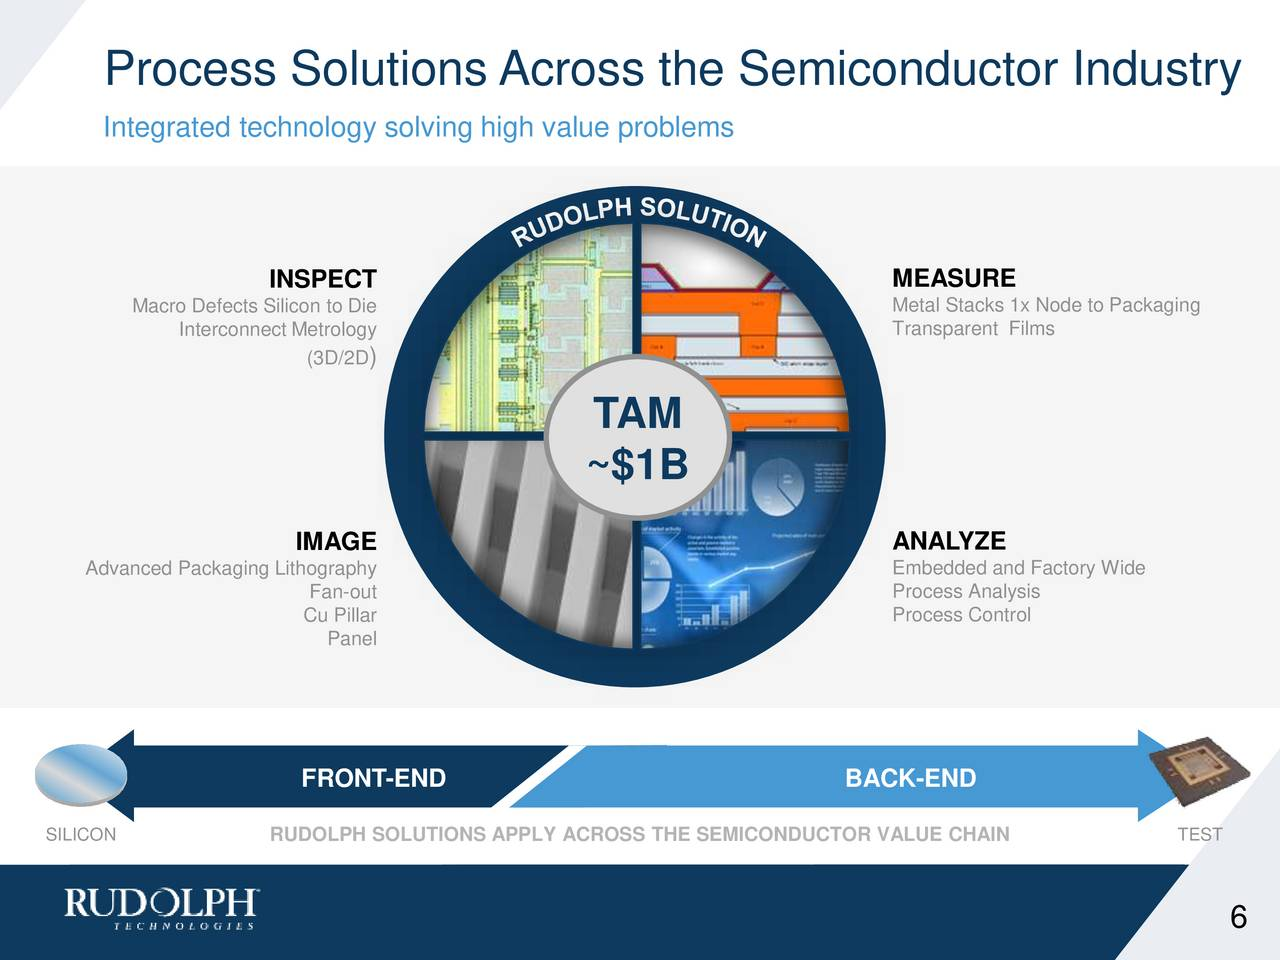 silicon the king in the semiconductor industry